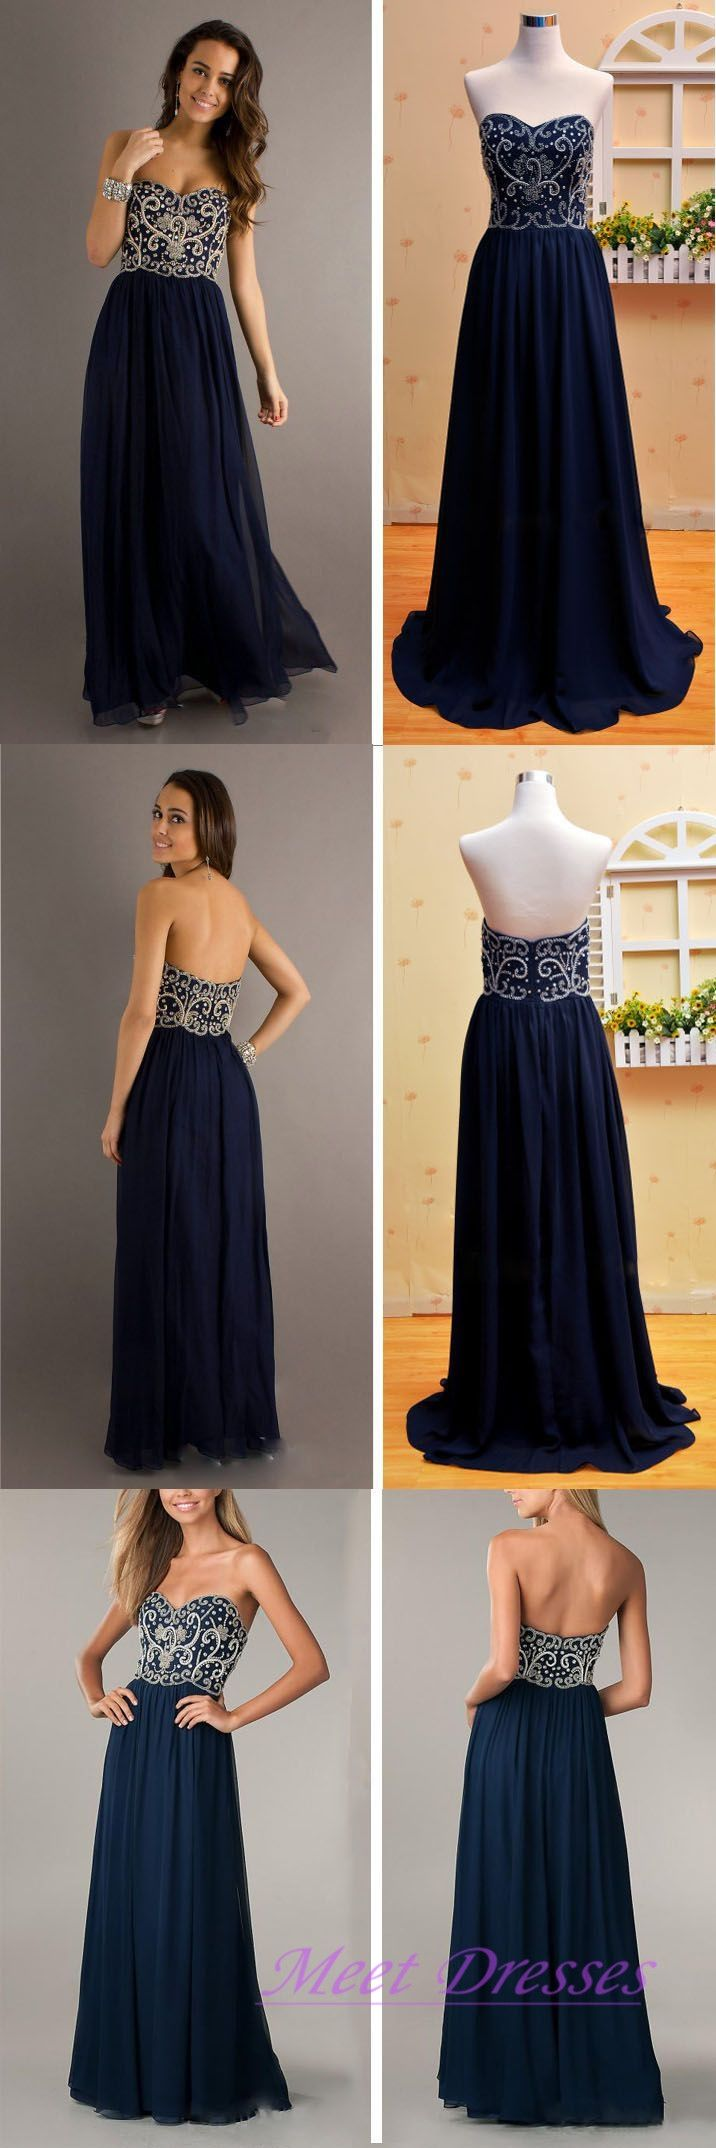 Navy blue prom dresses new style beaded bodice sweetheart neckline